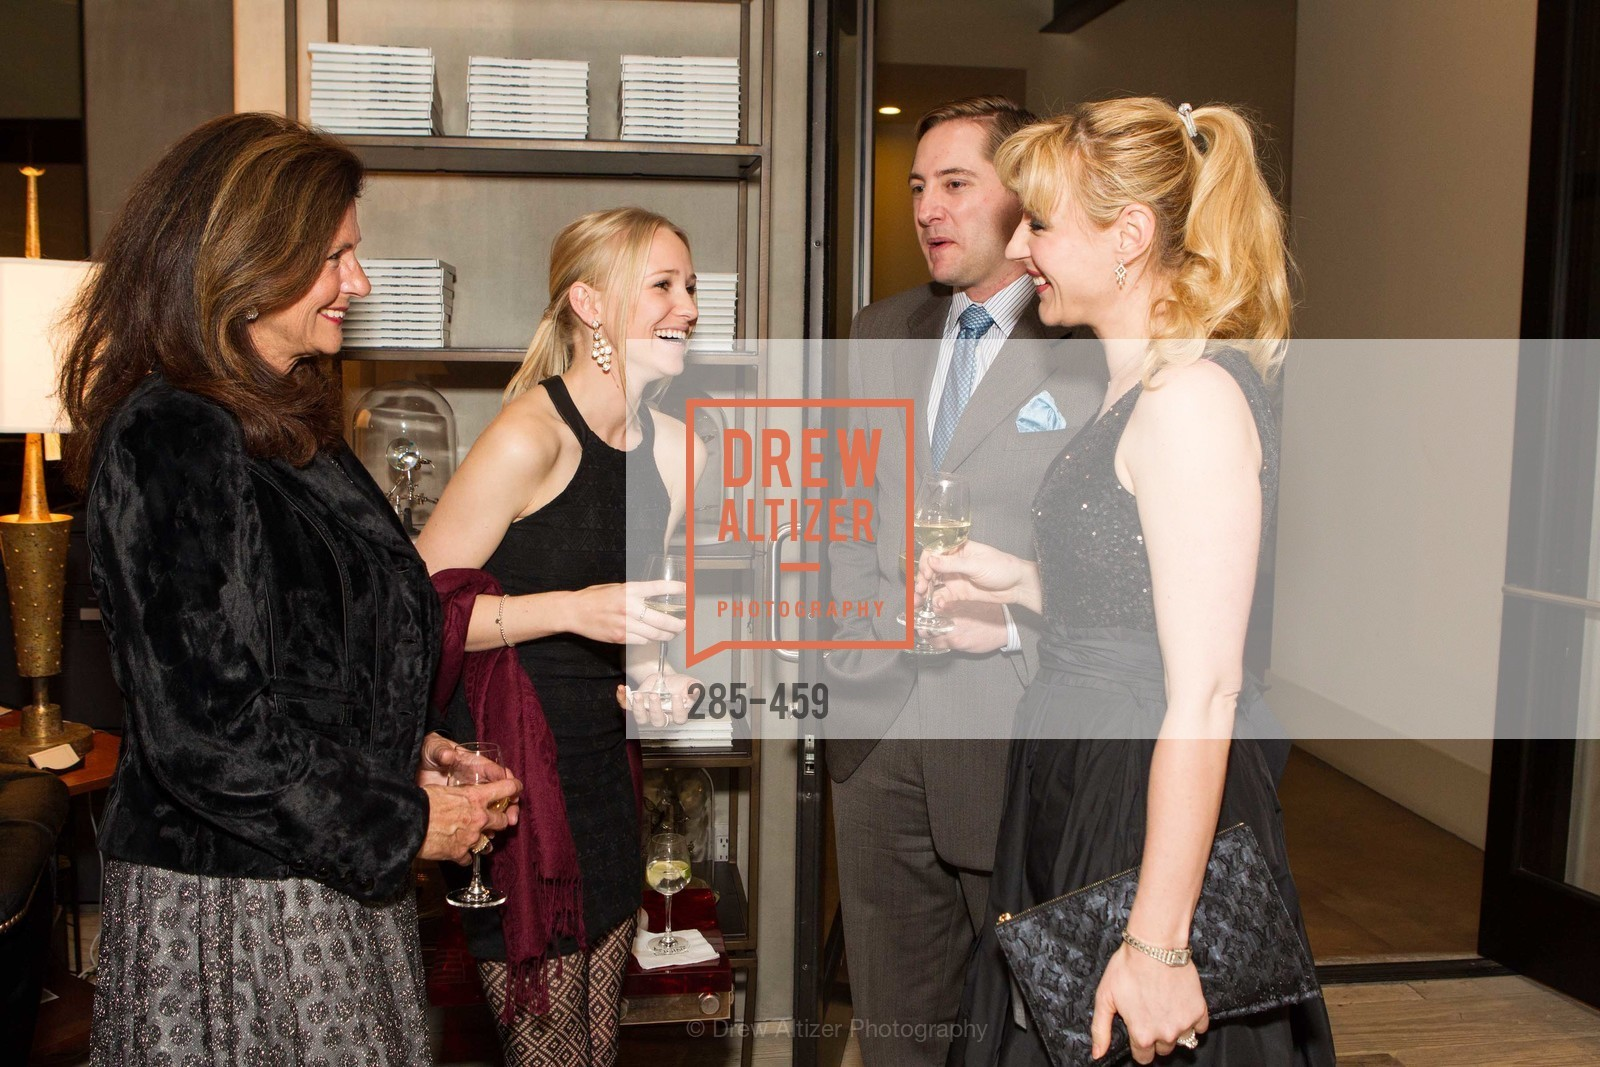 Linda Zider, Juliana Del Beccaro, Brian Gustafson, Liza Gustafson, 2014 SAN FRANCISCO BALLET OPENING NIGHT GALA Patron and Sponsor Reception, US. US, January 14th, 2014,Drew Altizer, Drew Altizer Photography, full-service agency, private events, San Francisco photographer, photographer california